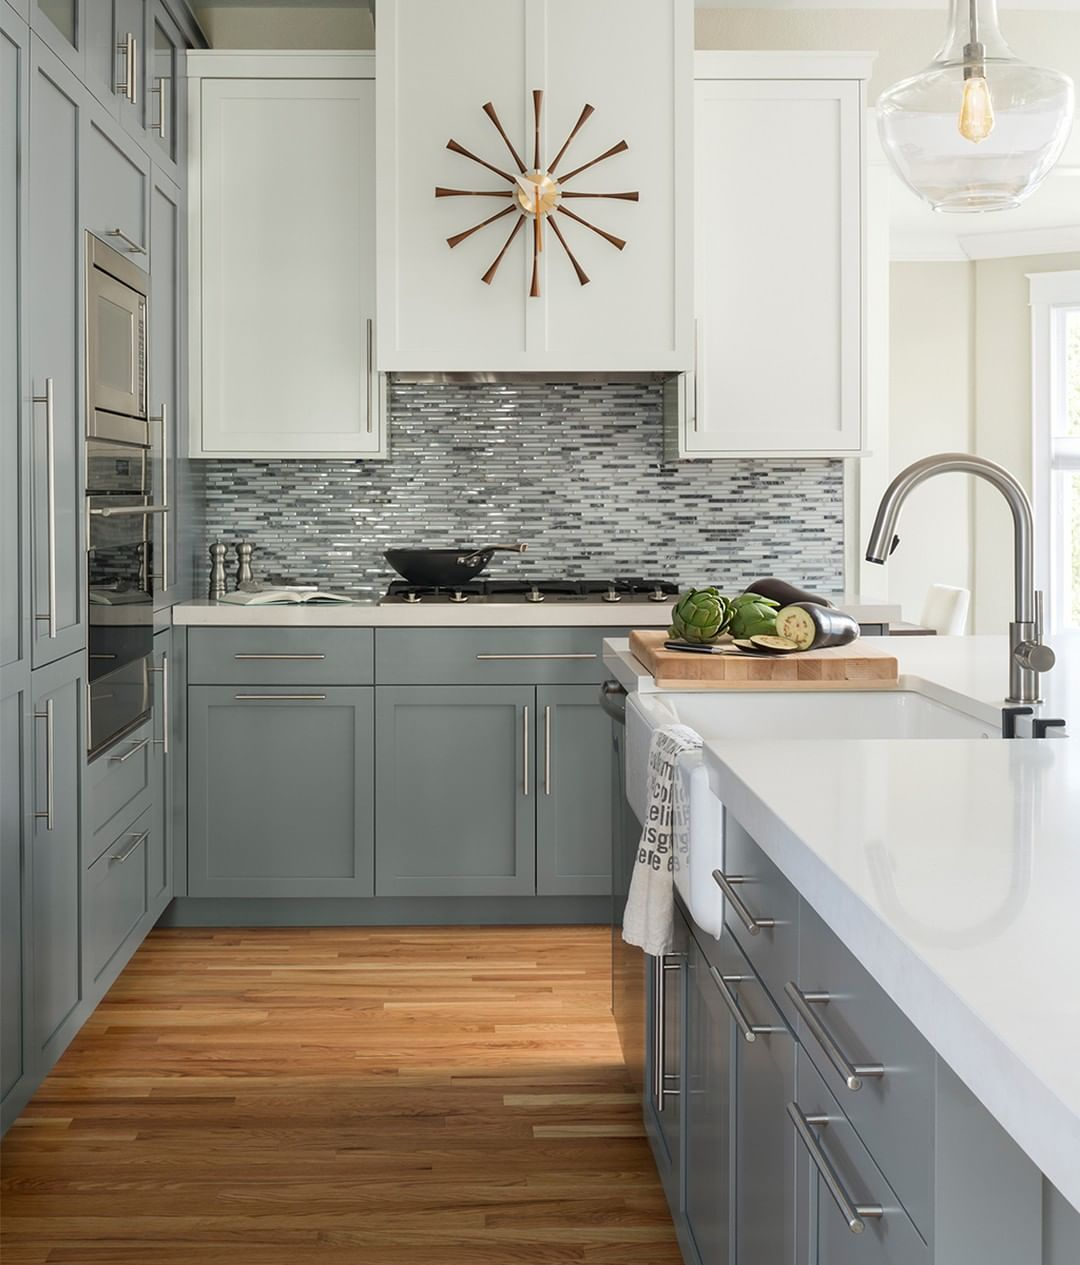 25 Absolutely Gorgeous Transitional Style Kitchen Ideas: Who Needs Coffee When You've Got A Beautiful Kitchen